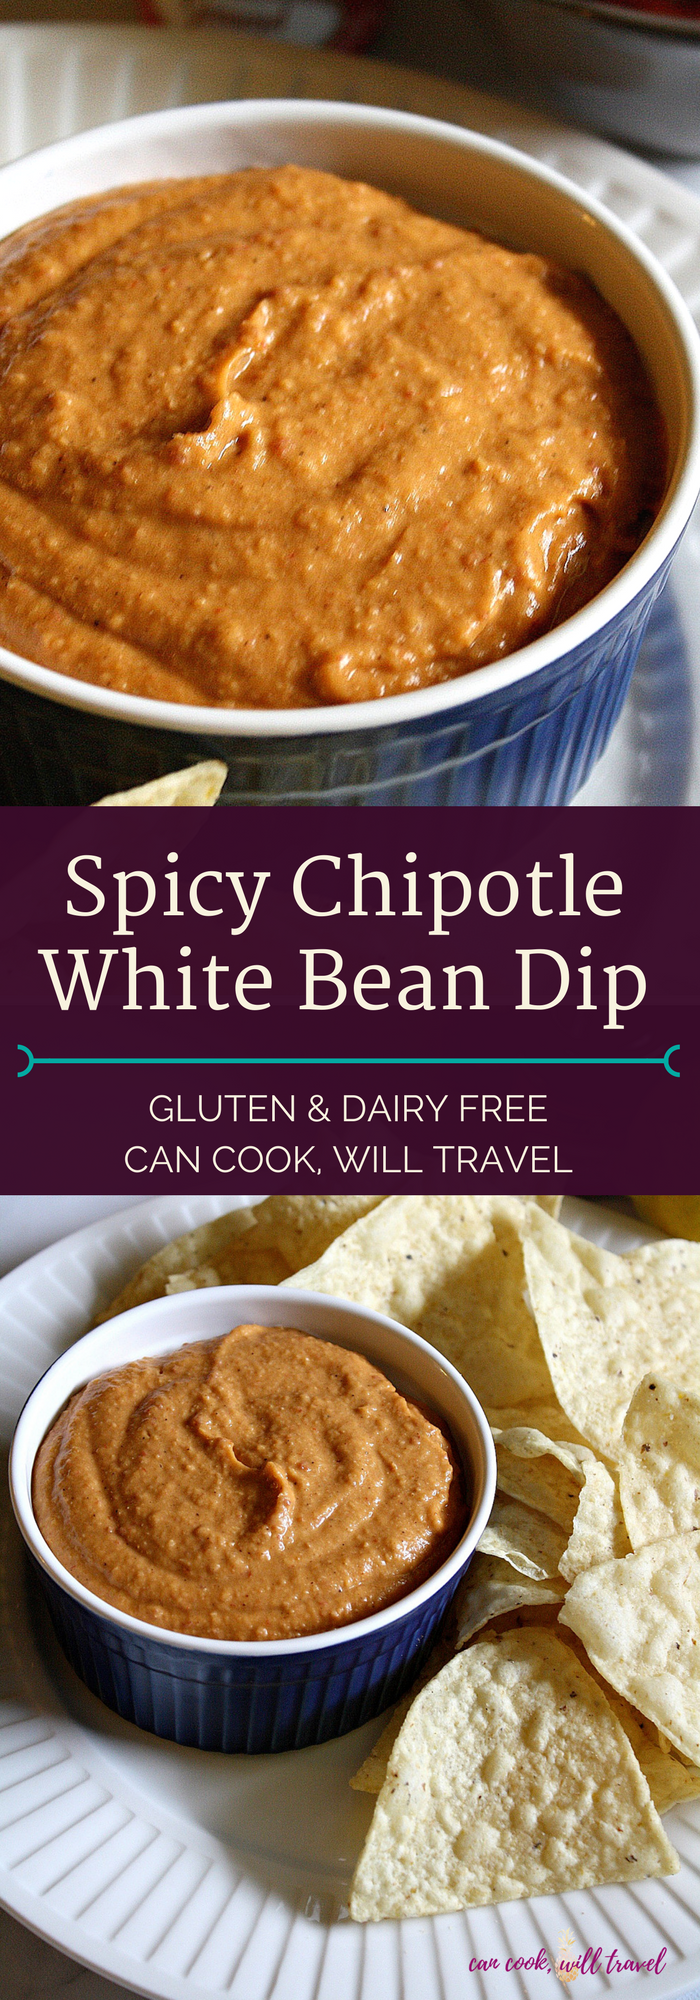 Spicy Chipotle White Bean Dip_Collage1